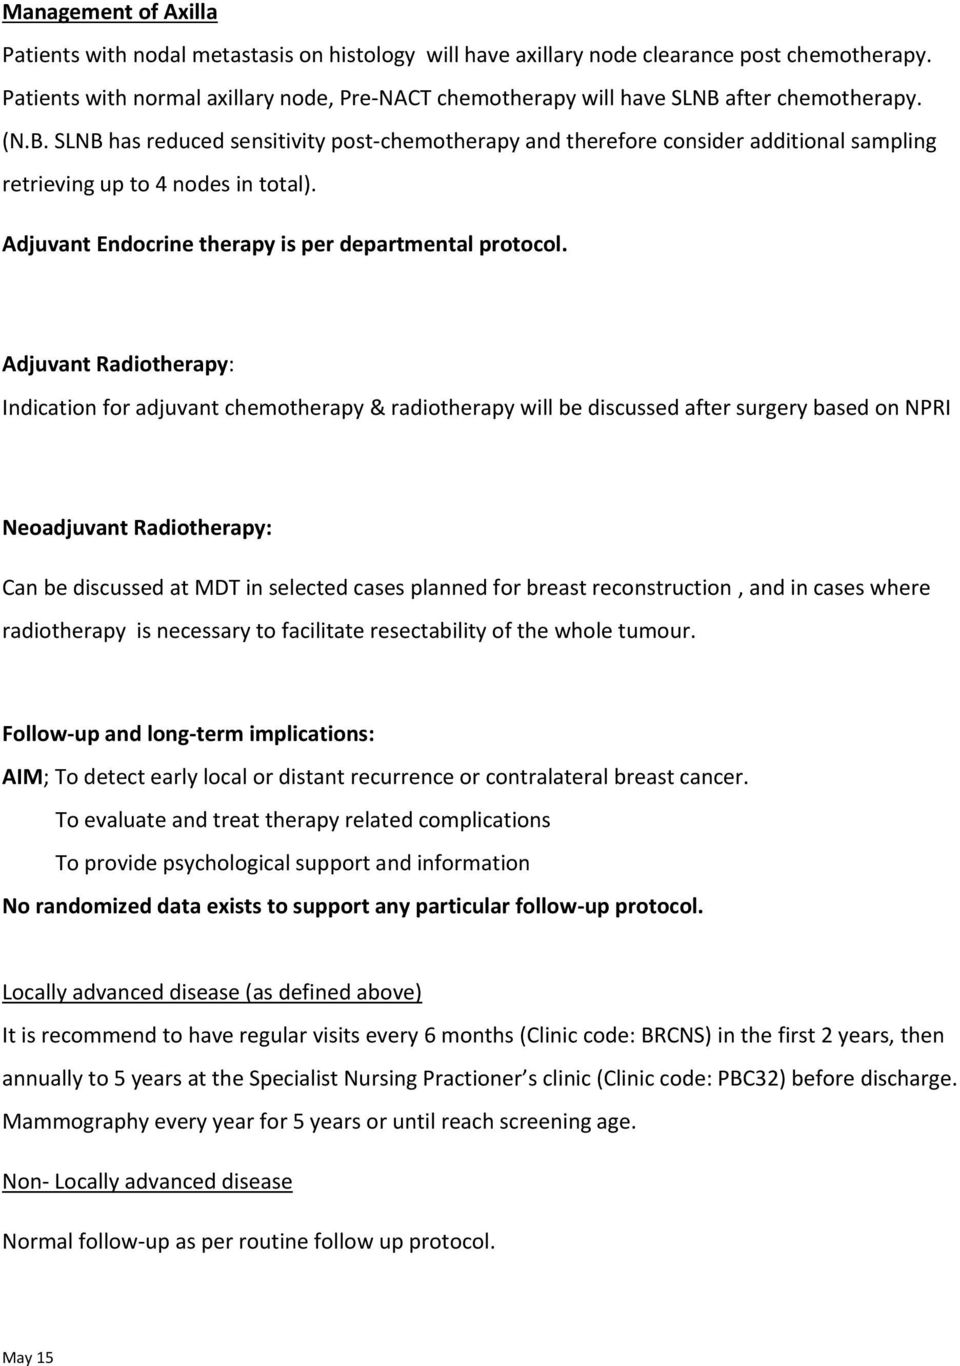 Adjuvant Endocrine therapy is per departmental protocol.